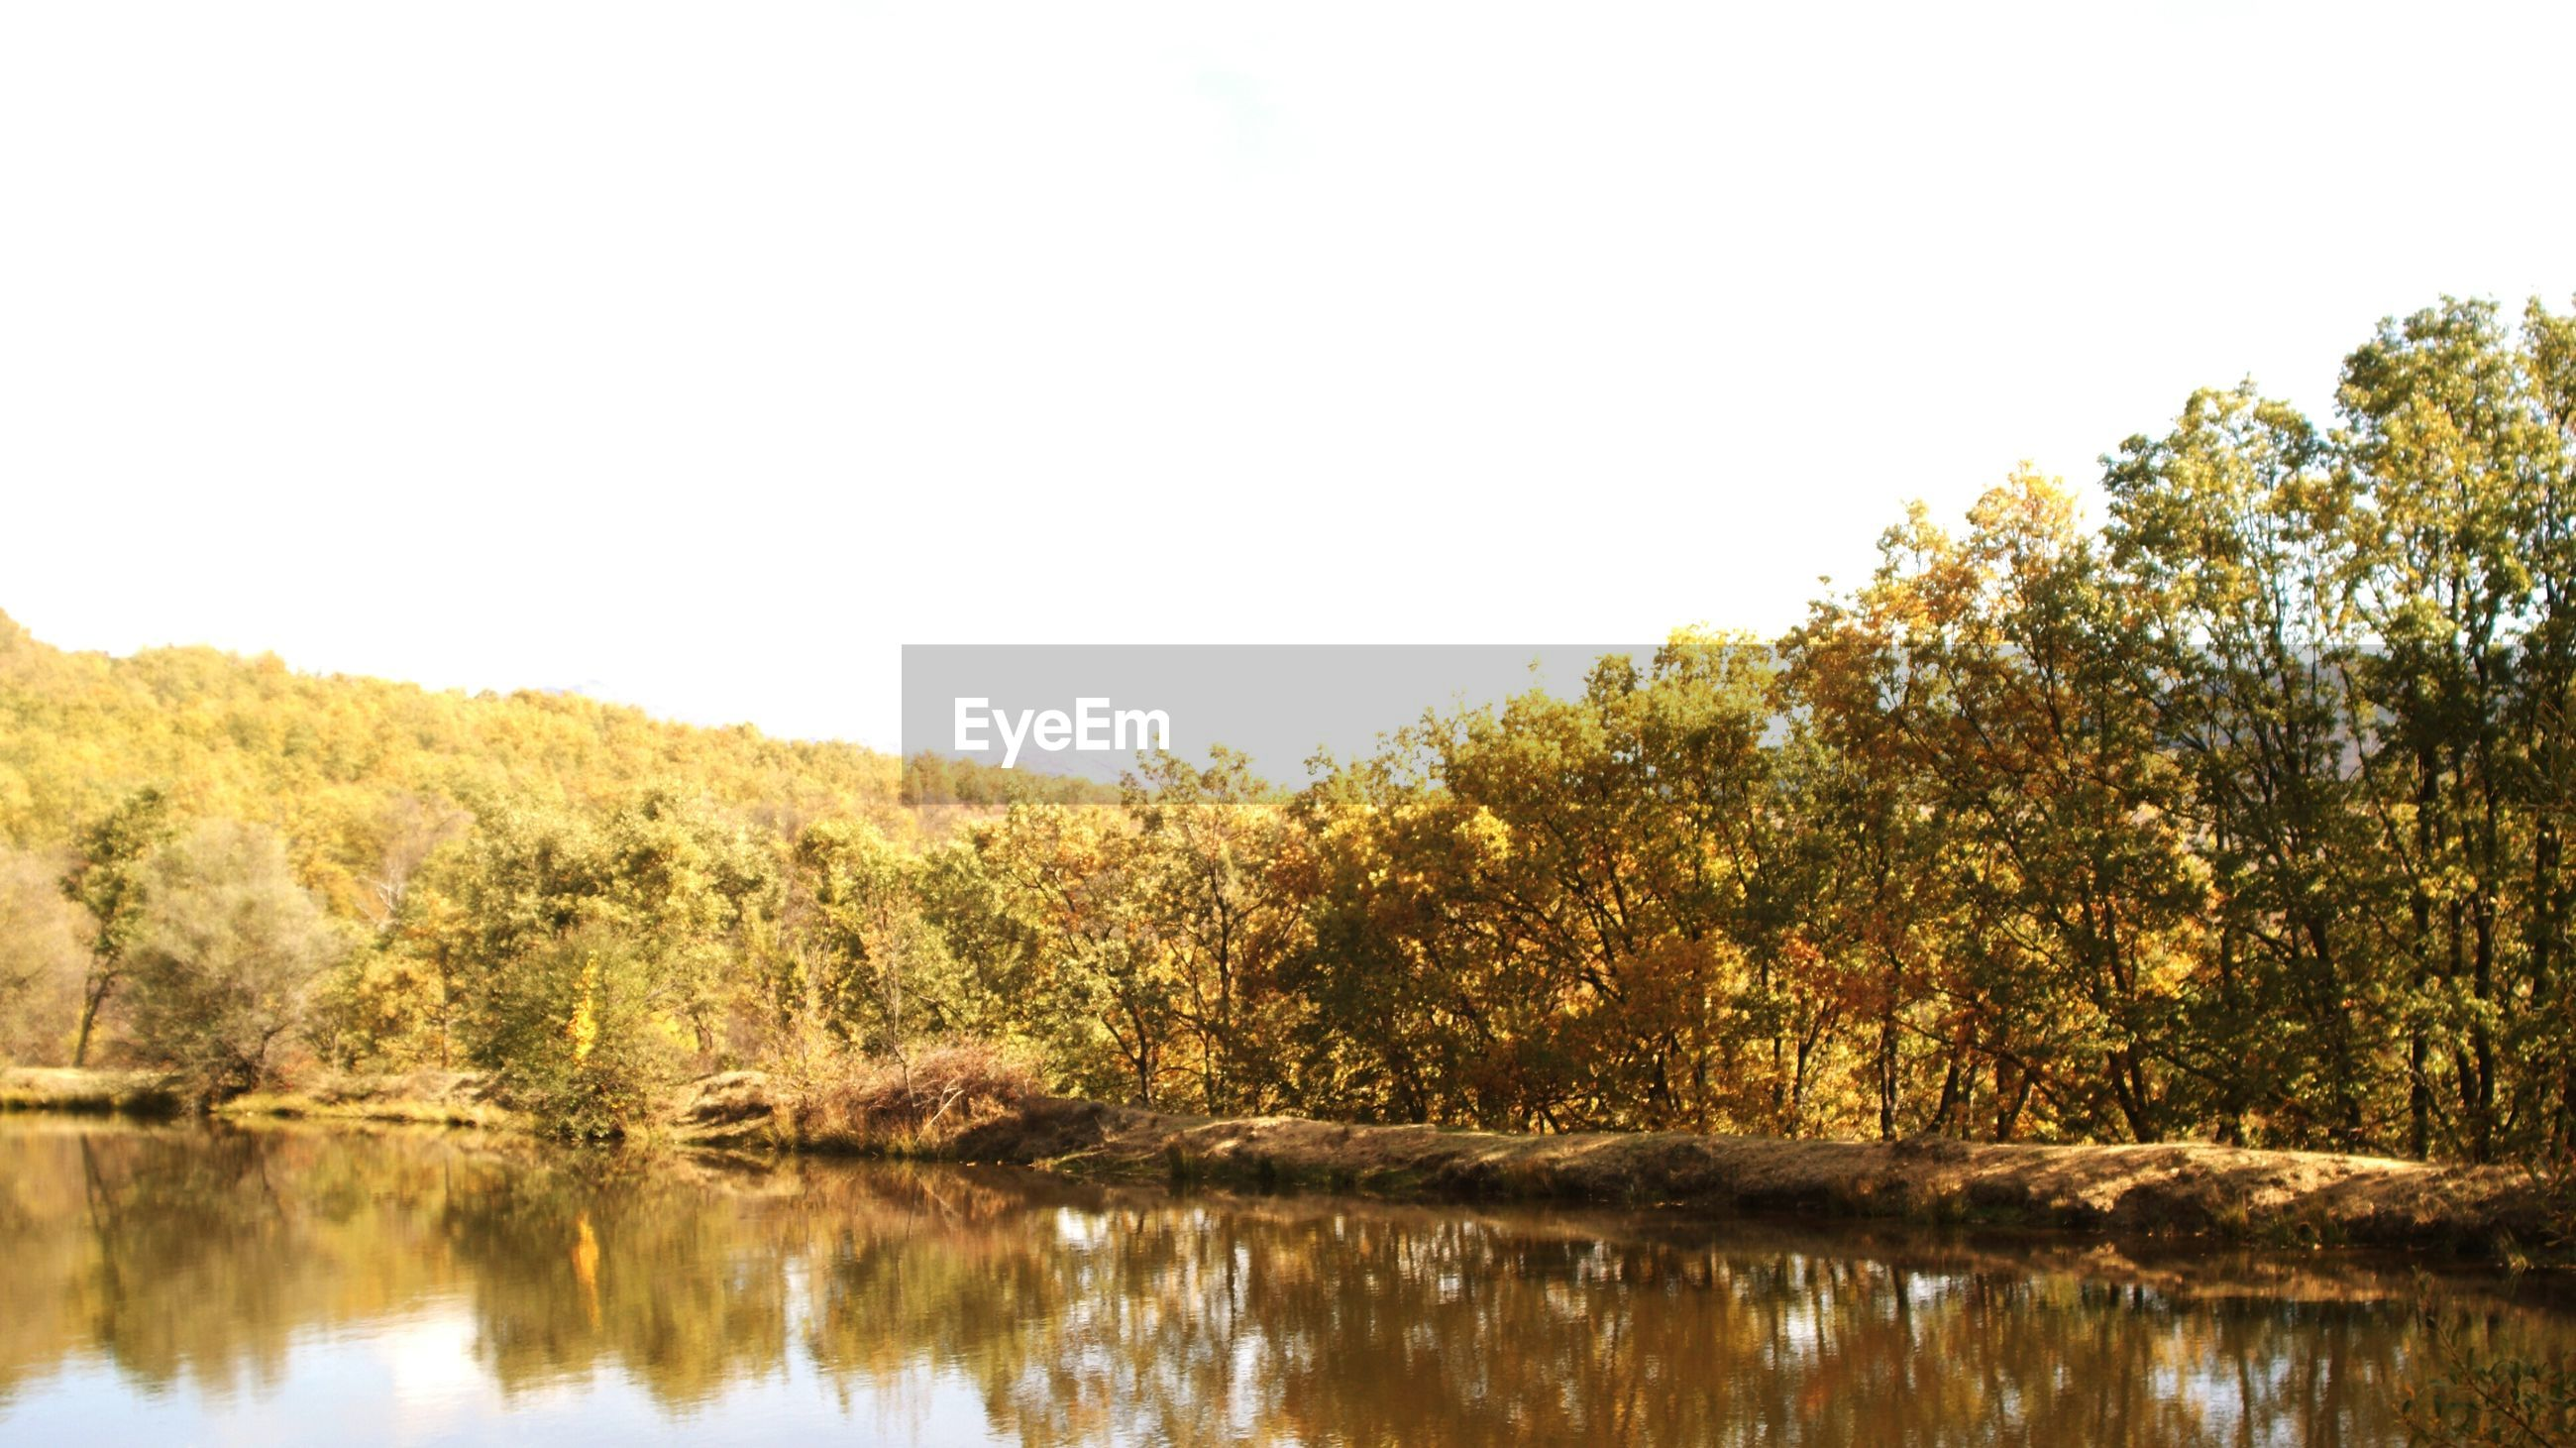 tree, reflection, water, lake, waterfront, clear sky, tranquility, tranquil scene, scenics, beauty in nature, nature, standing water, idyllic, copy space, calm, growth, river, day, forest, non-urban scene